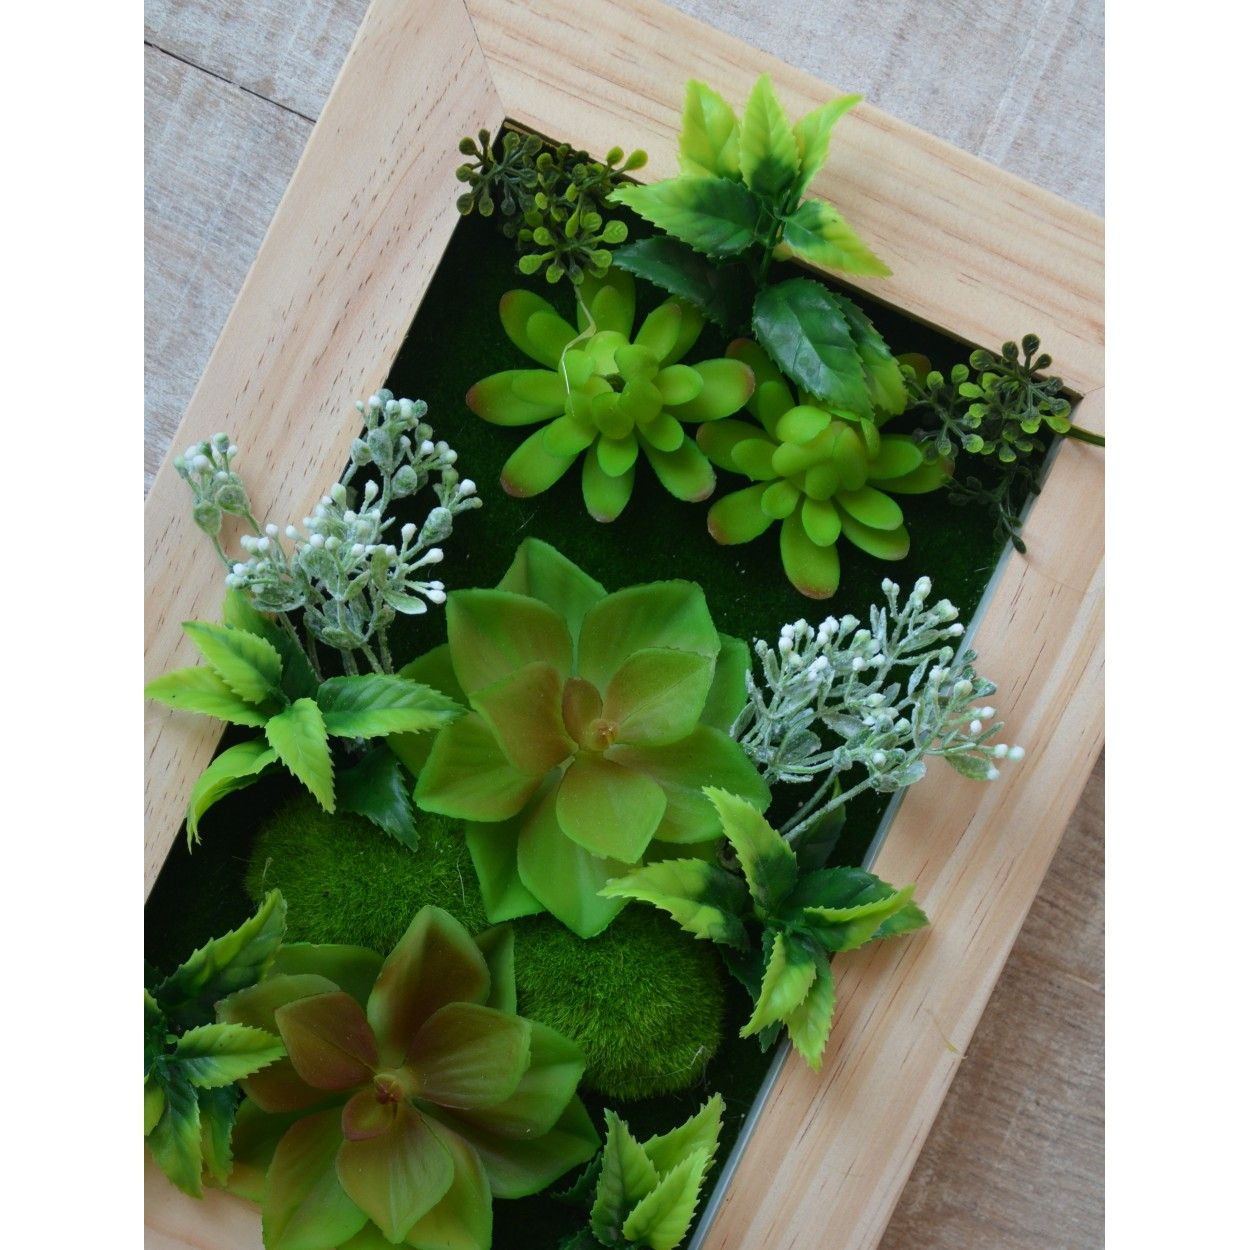 Jard n vertical decorativo con plantas artificiales hogar for Plantas artificiales jardin vertical